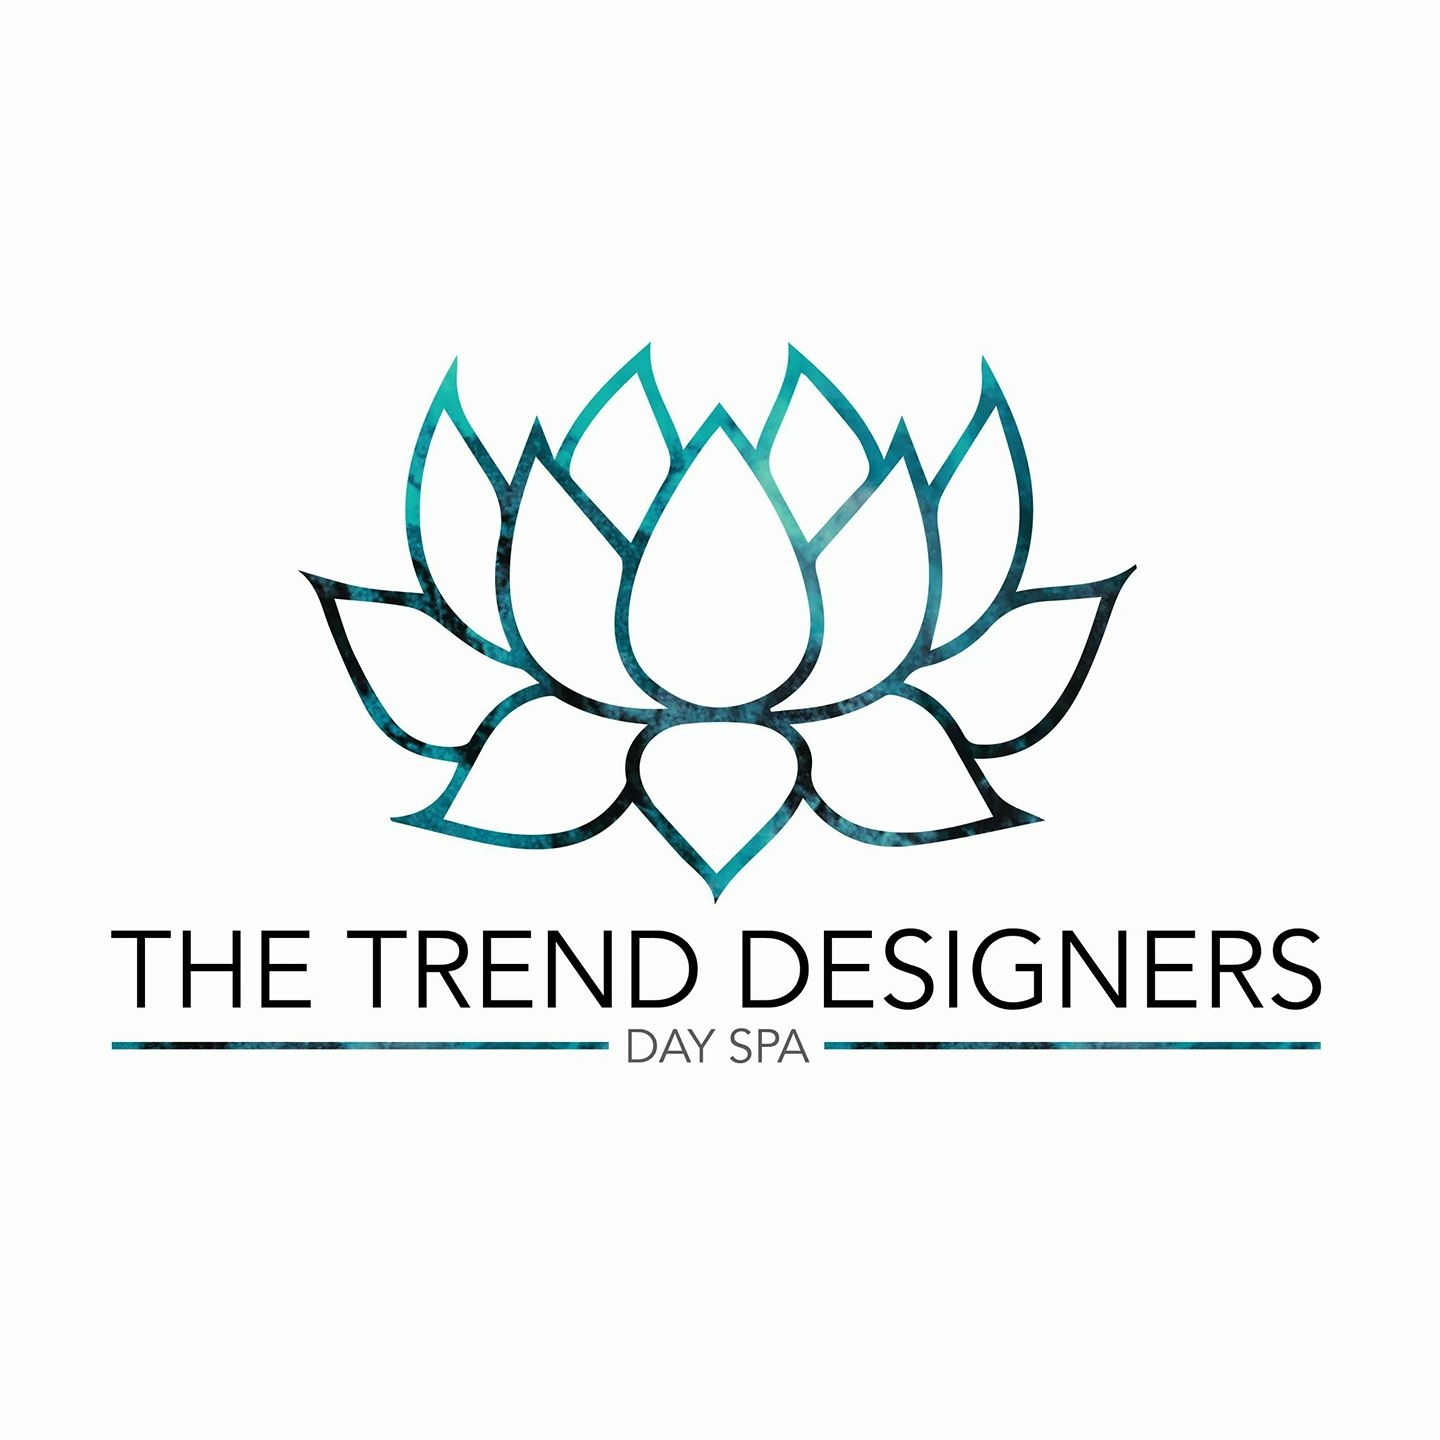 The Trend Designers